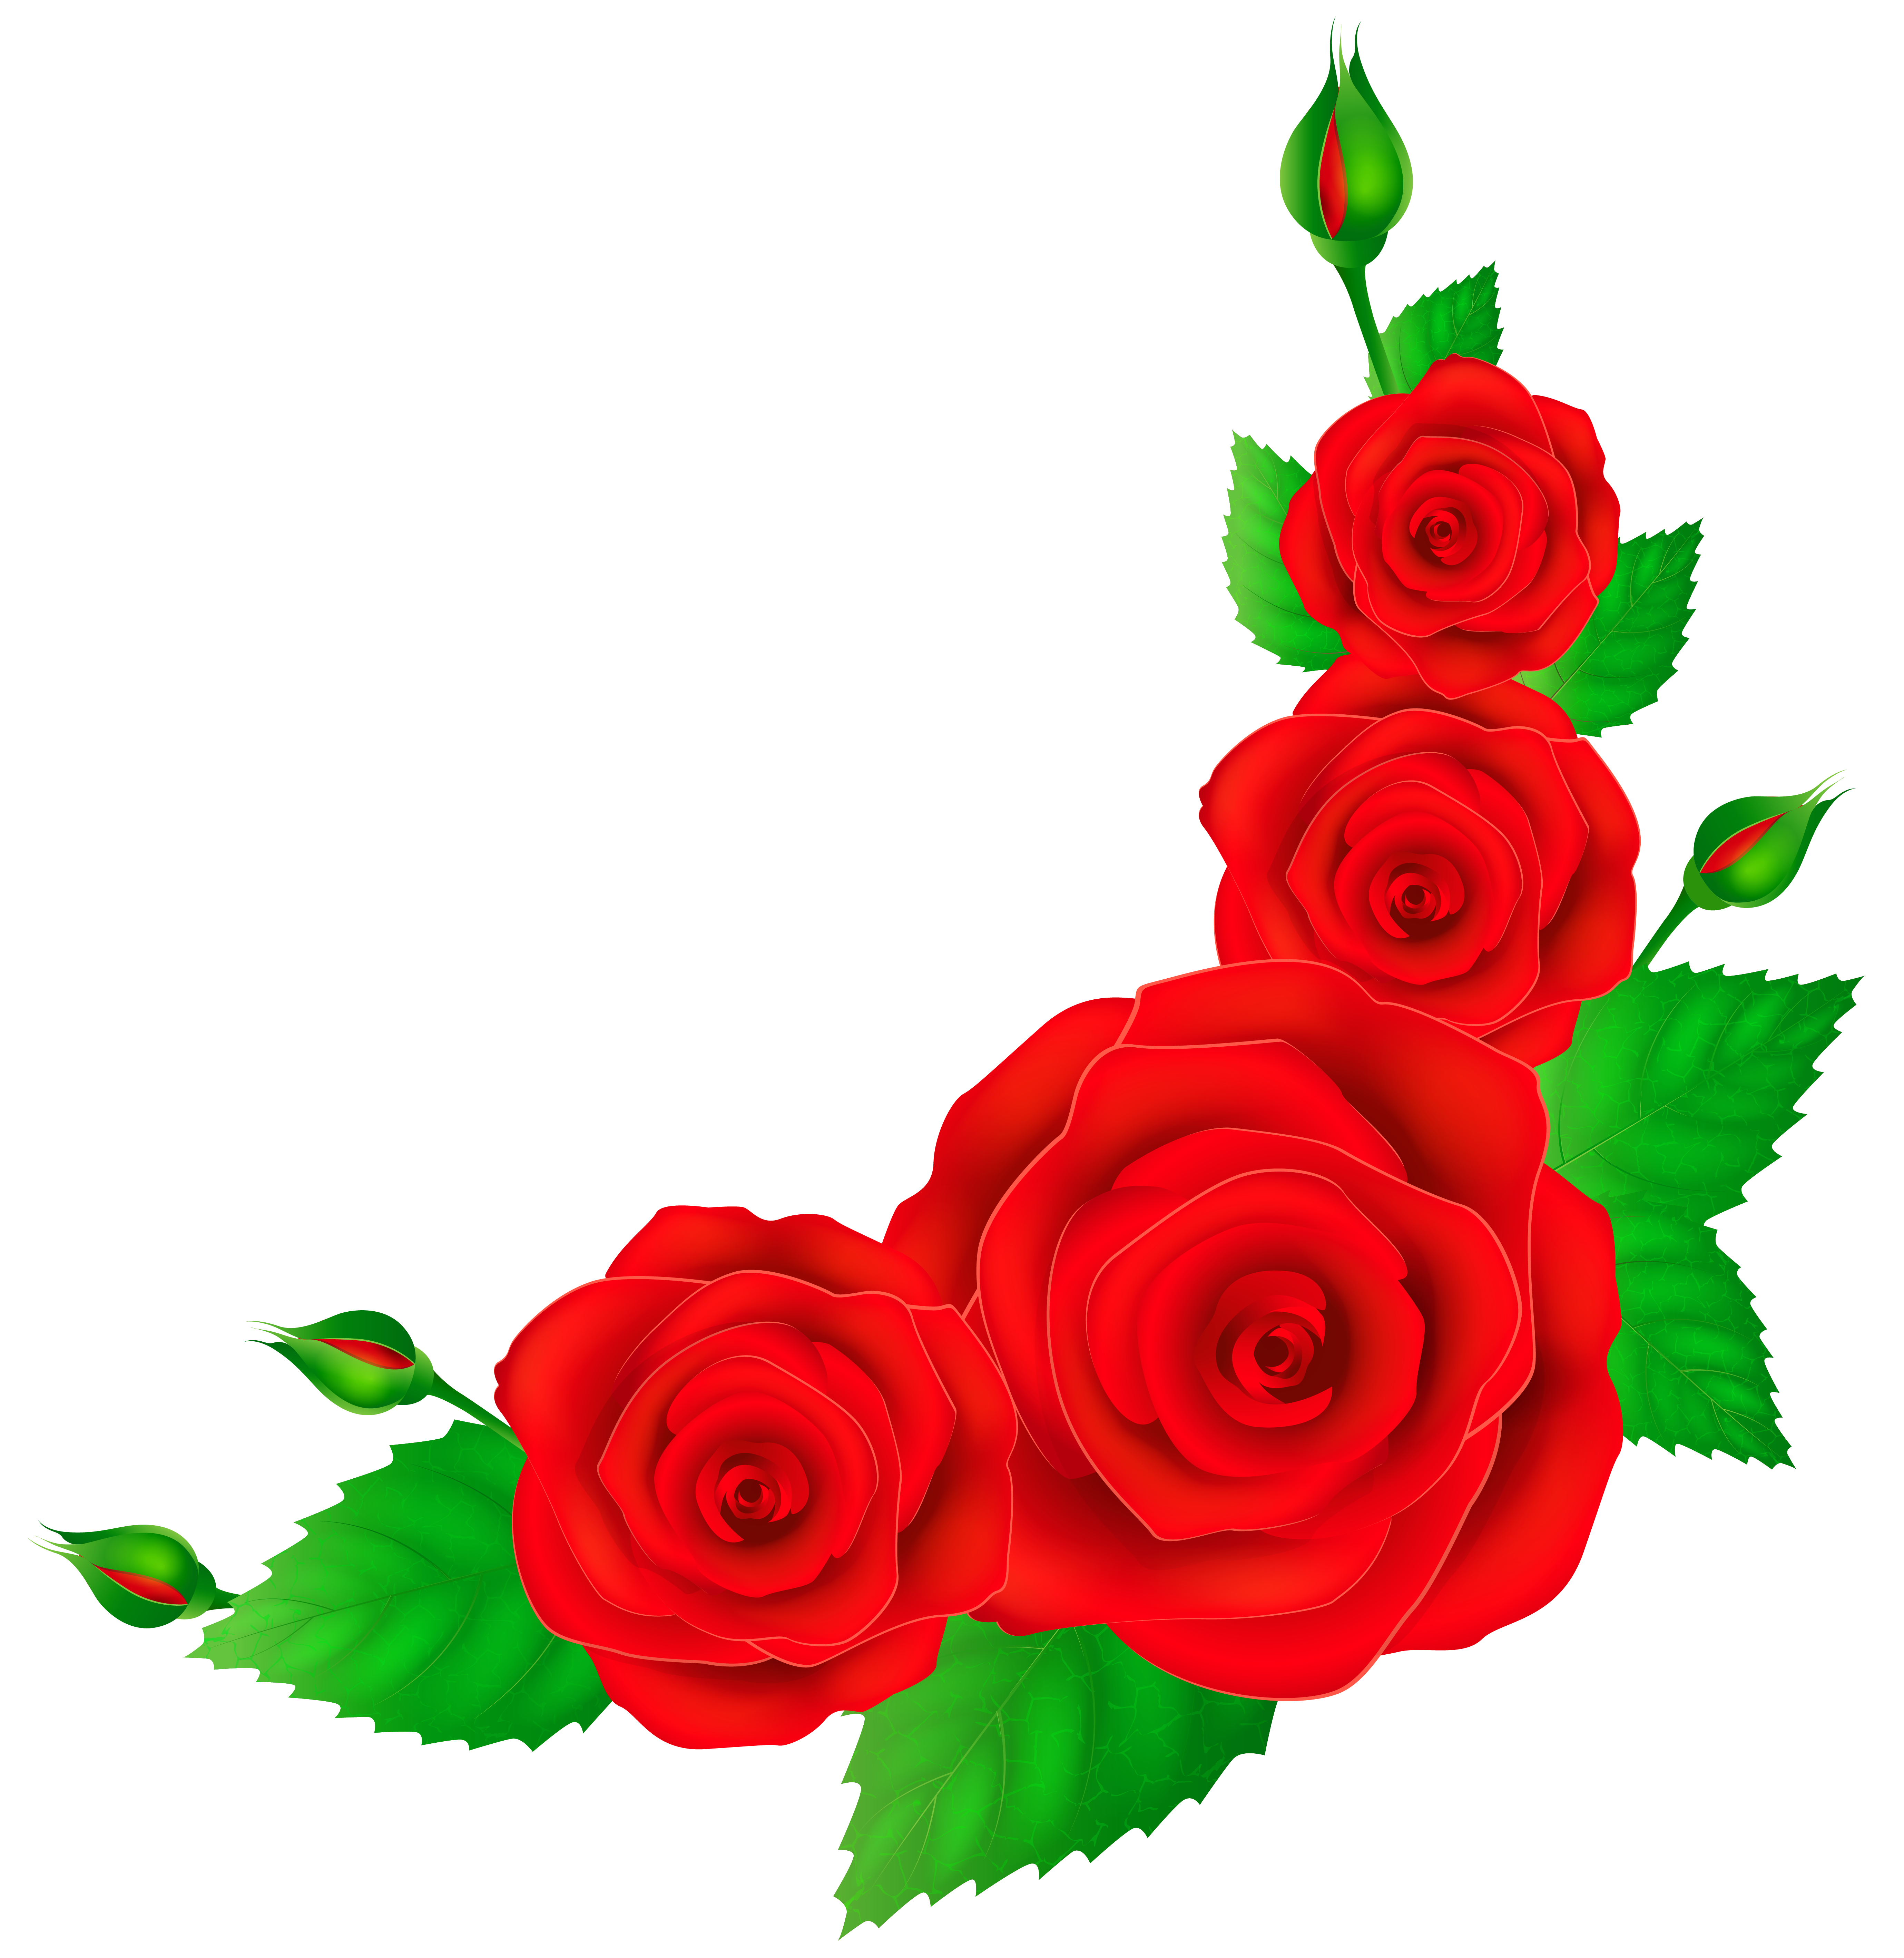 Crown of roses clipart clipart freeuse download 28+ Collection of Roses Clipart Corner | High quality, free cliparts ... clipart freeuse download